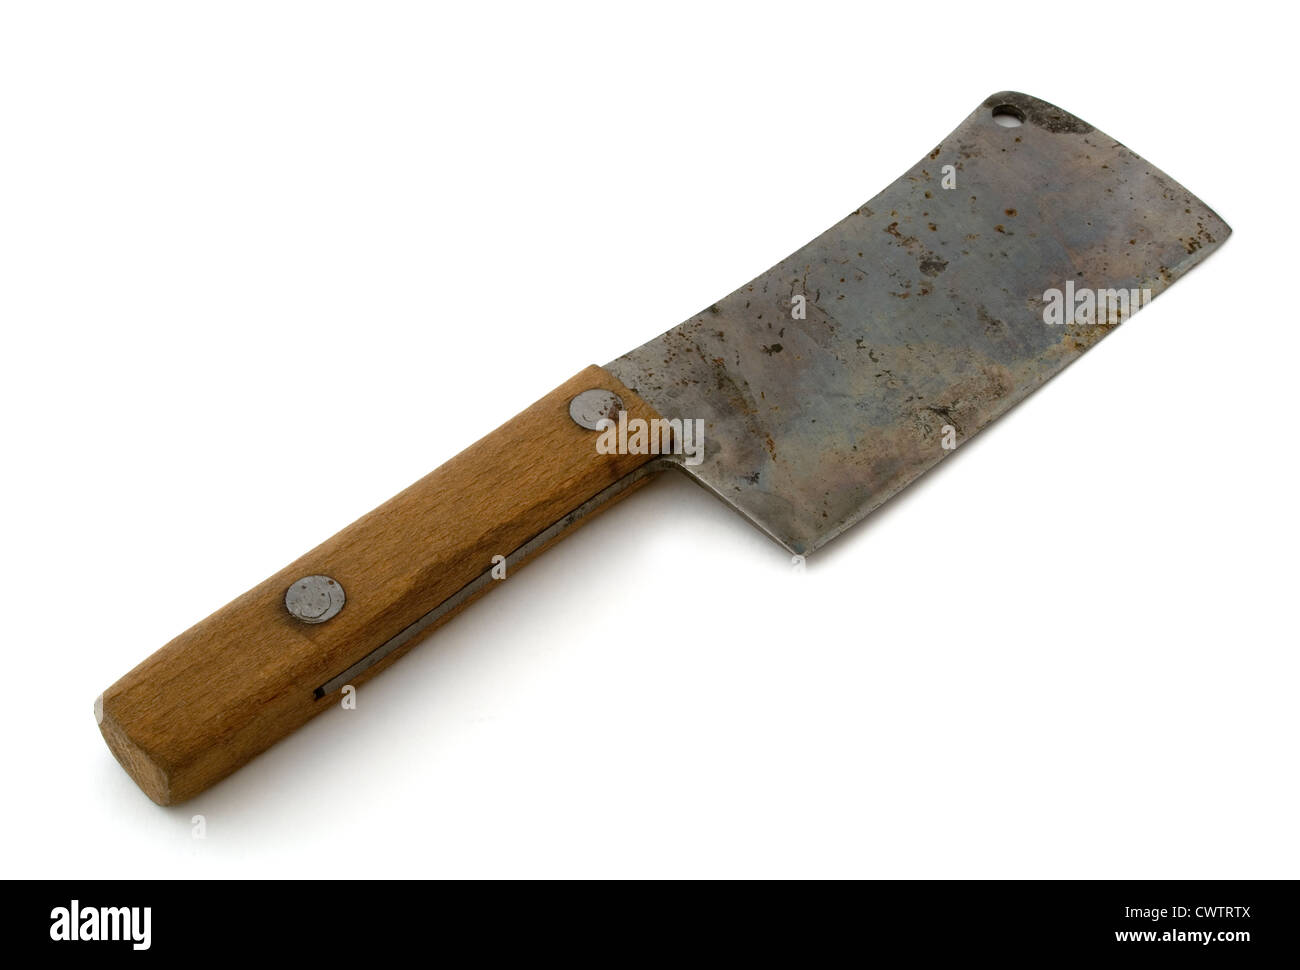 Old rusty meat cleaver isolated on white - Stock Image